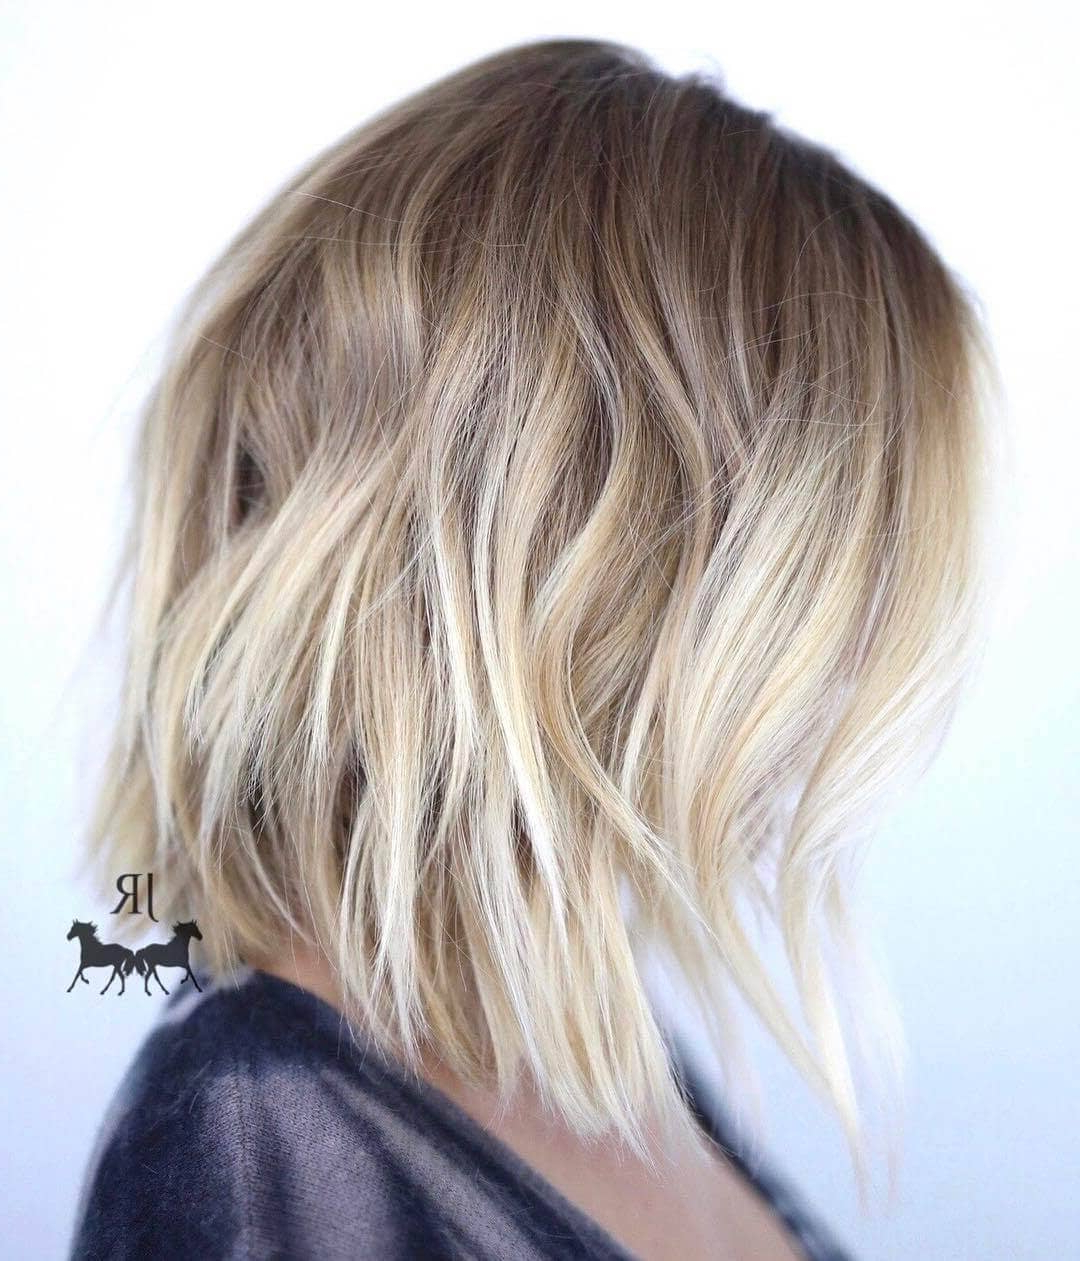 50 Fresh Short Blonde Hair Ideas To Update Your Style In 2018 Intended For Choppy Tousled Bob Haircuts For Fine Hair (View 11 of 20)